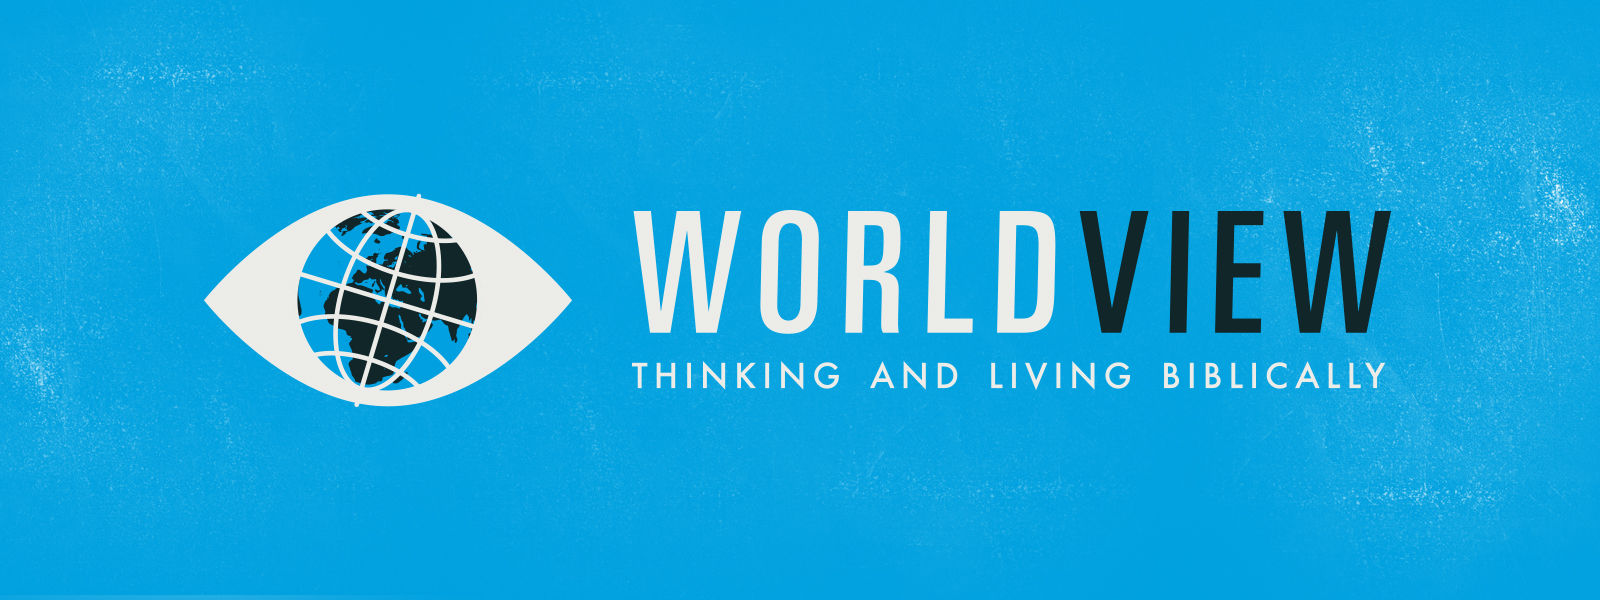 Worldview: Thinking and Living Biblically